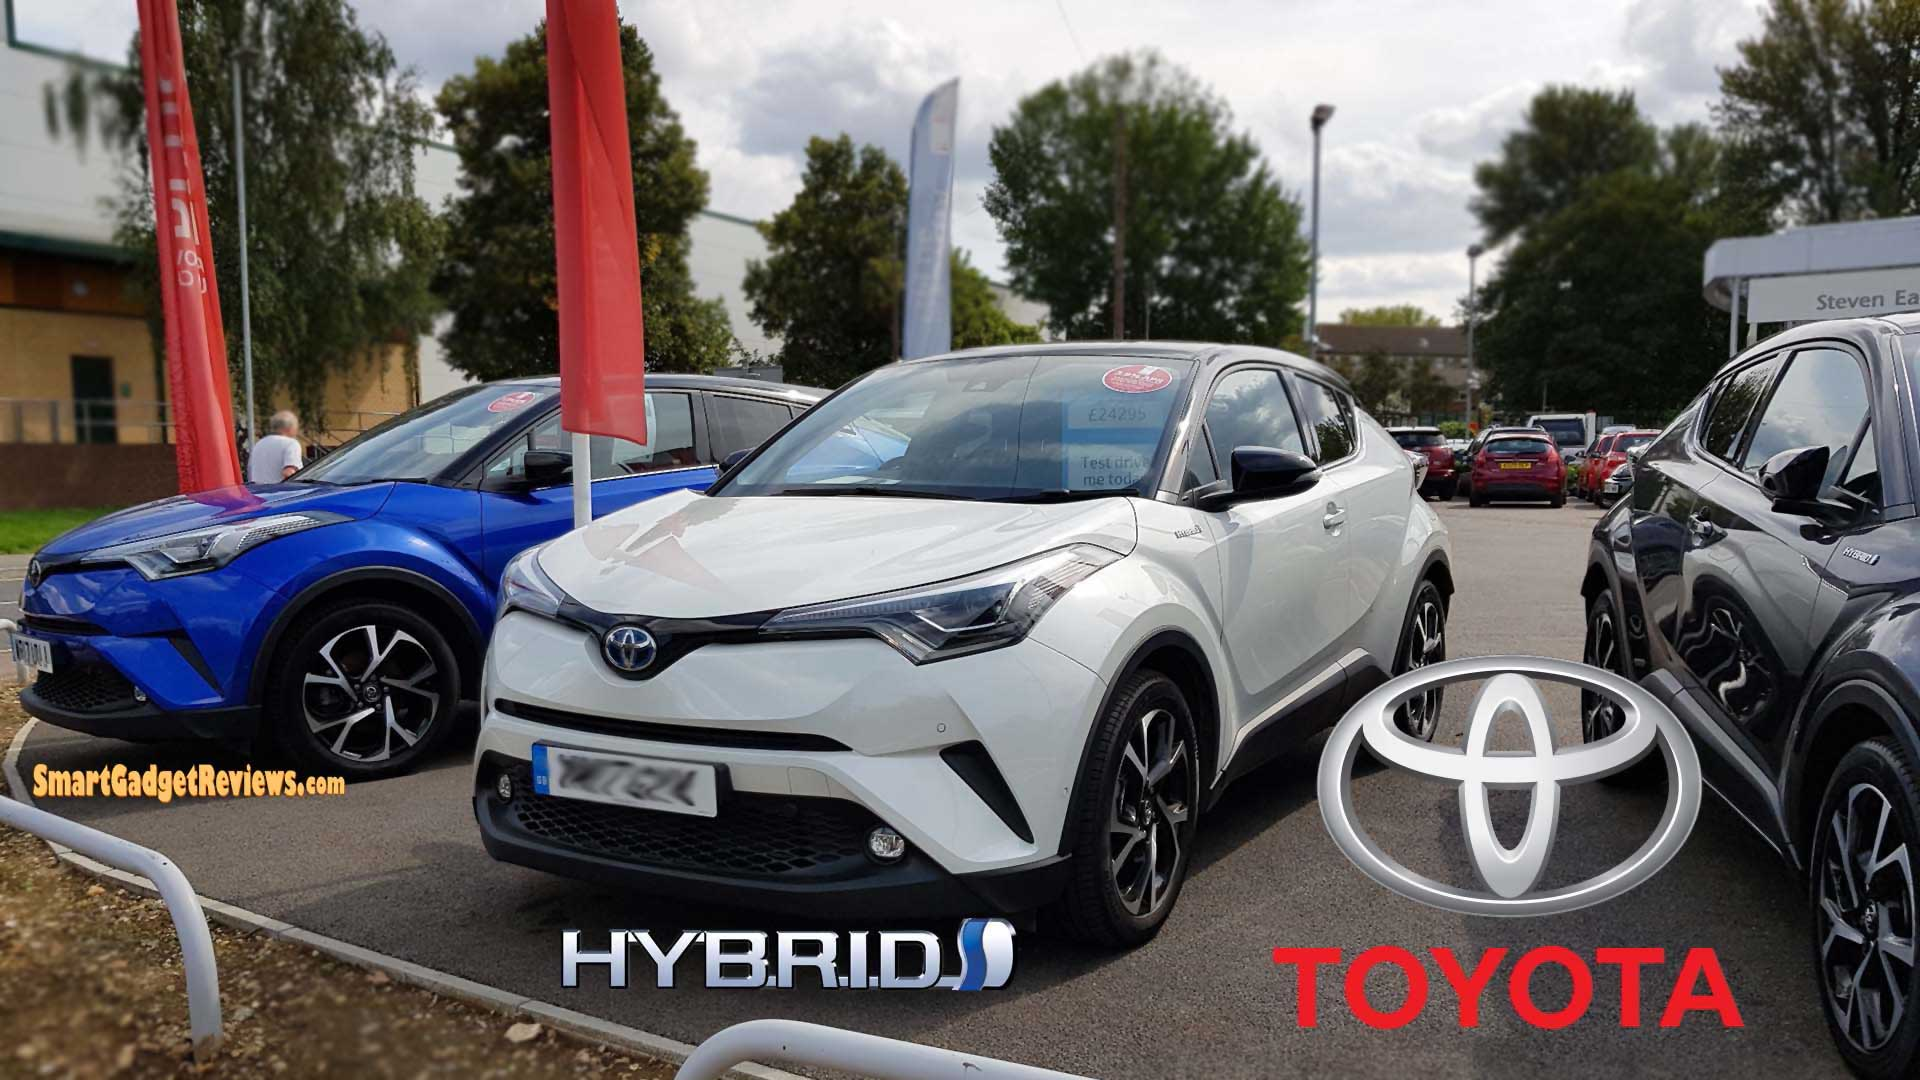 The All New 2018 Toyota C-HR Crossover SUV Car Steven Eagell Toyota (Watford)